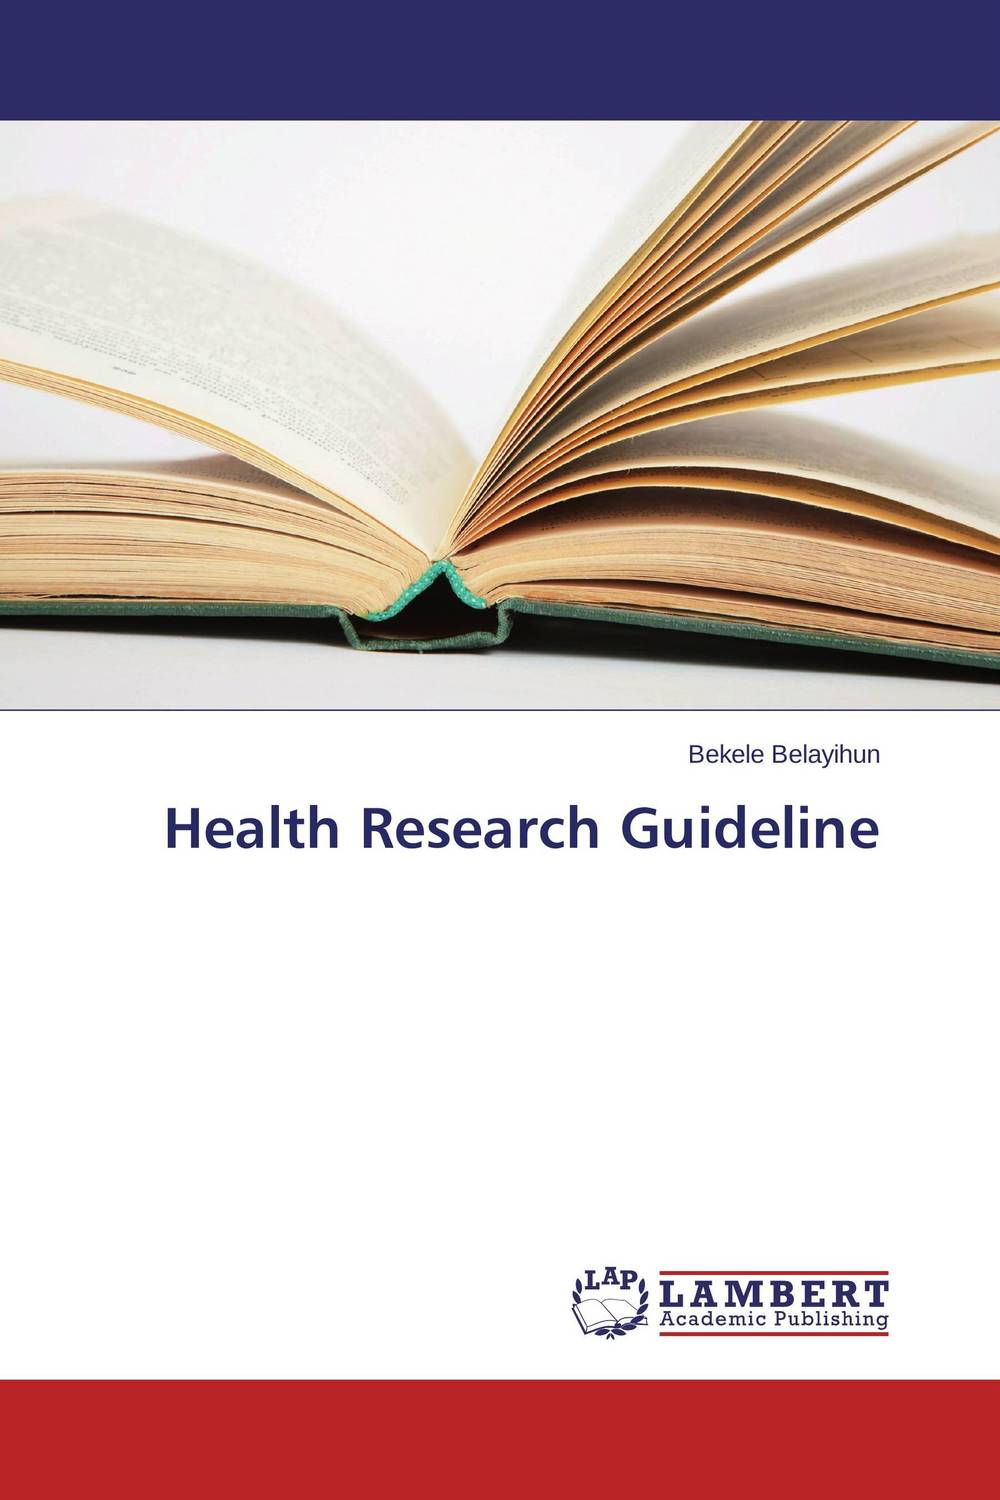 Health Research Guideline